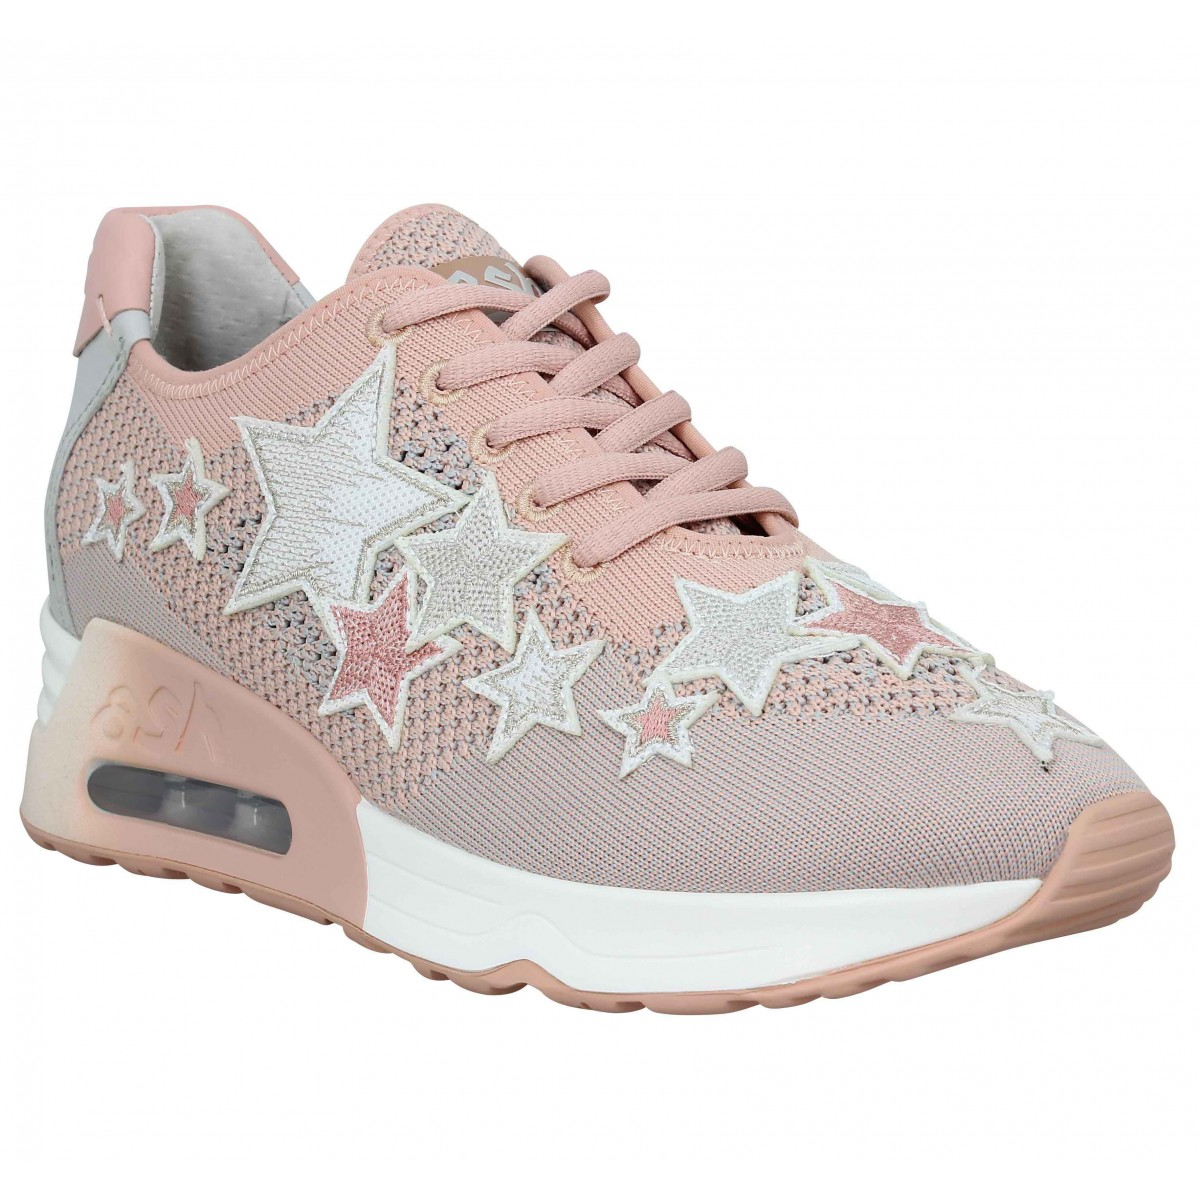 Ash Knit Nude Femme Chaussures Fanny Star Lucky gg8xwqv7